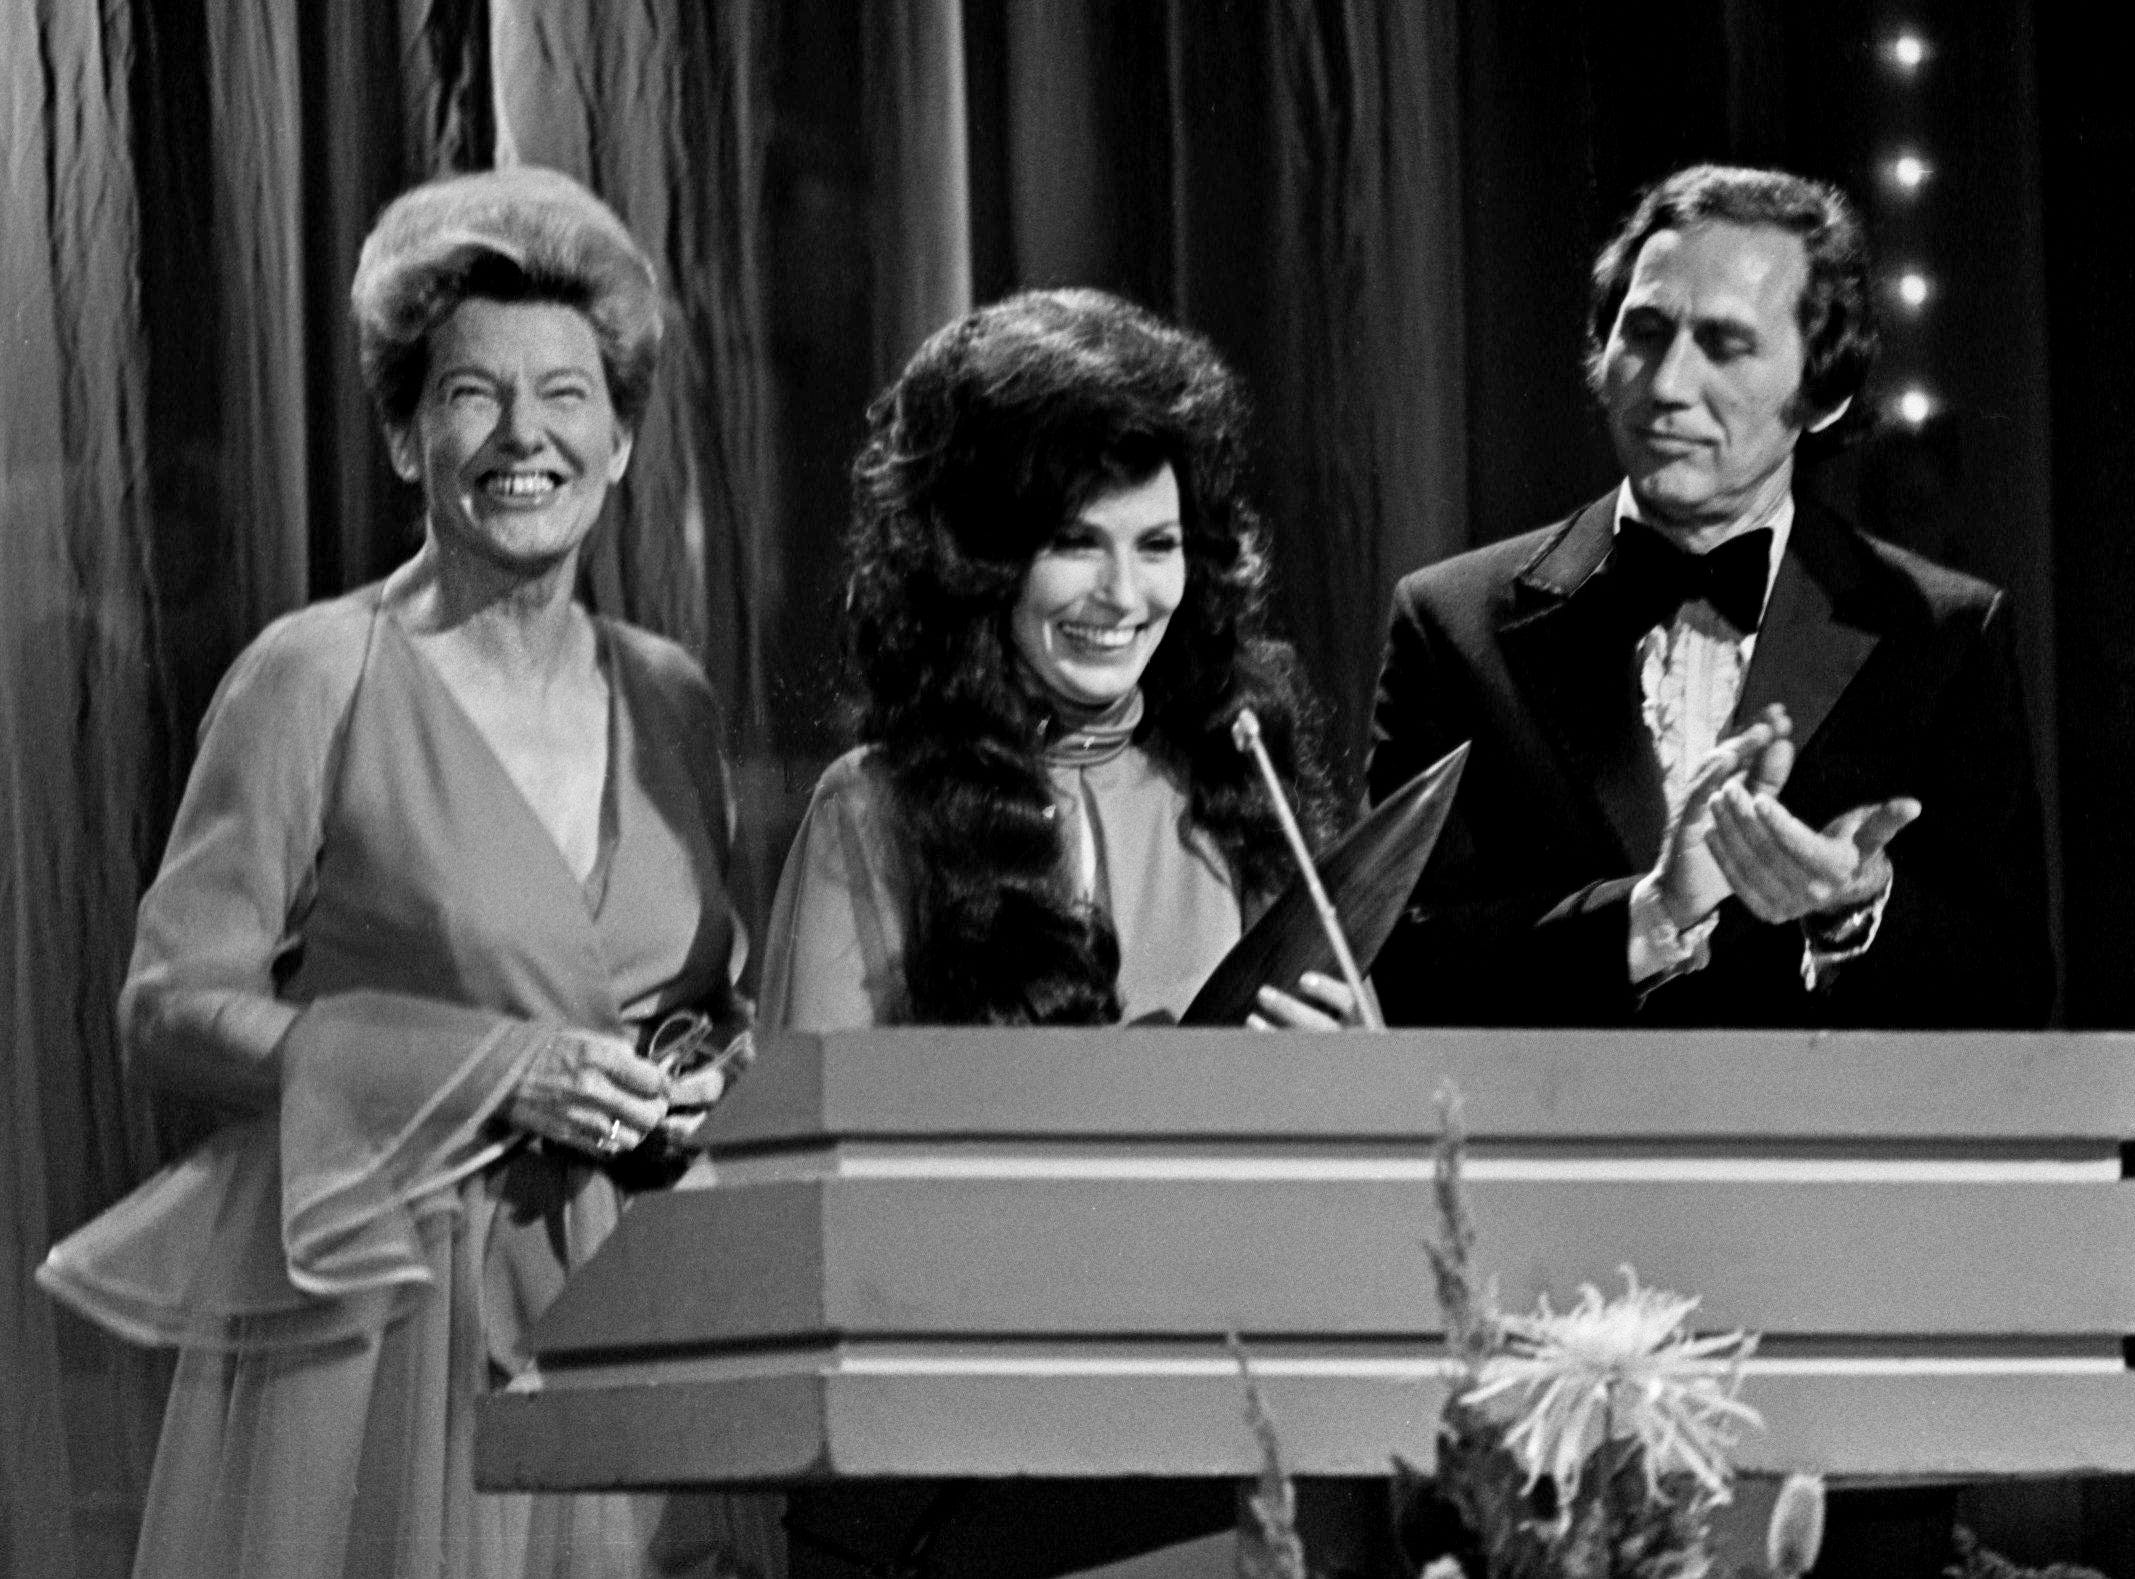 Presenters Minnie Pearl, left, and Chet Atkins, right, welcomes Loretta Lynn, center, to the ranks of CMA Entertainer of the Year during the annual CMA Awards show's nationally televised ceremonies at the Grand Ole Opry House on Oct. 16, 1972.